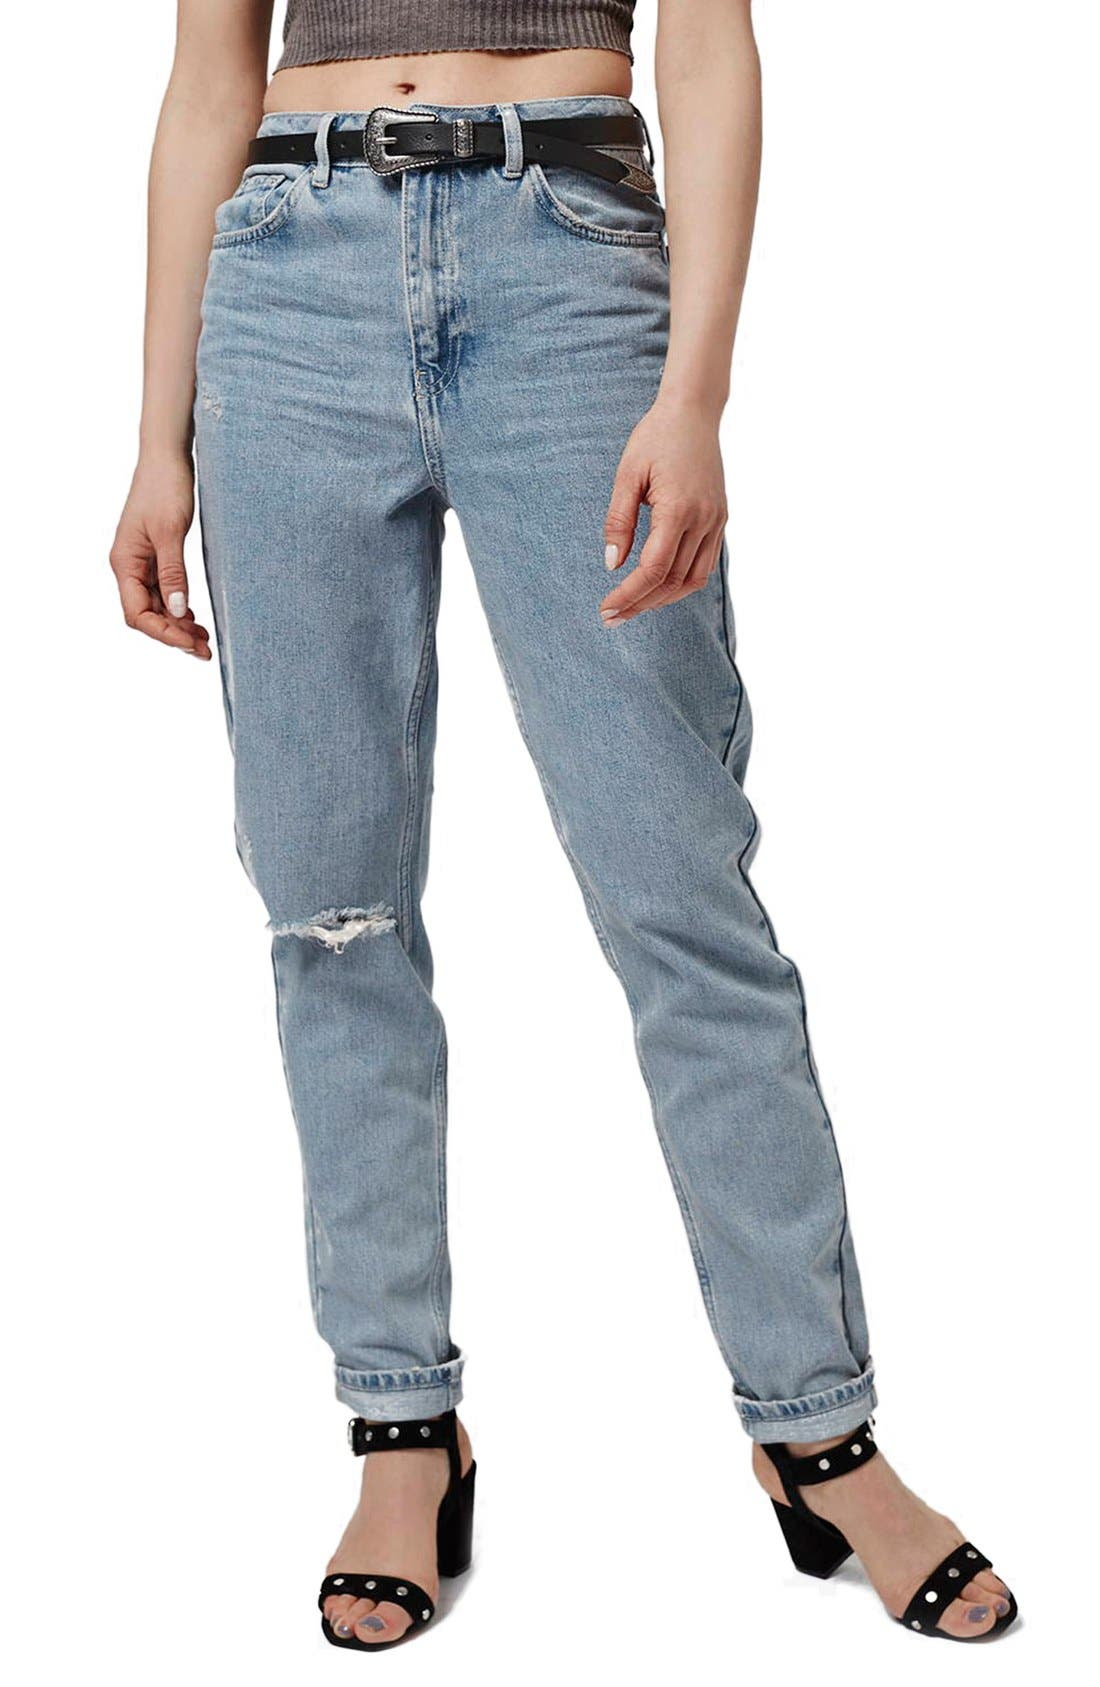 Alternate Image 1 Selected - Topshop Ripped High Rise Mom Jeans (Tall)